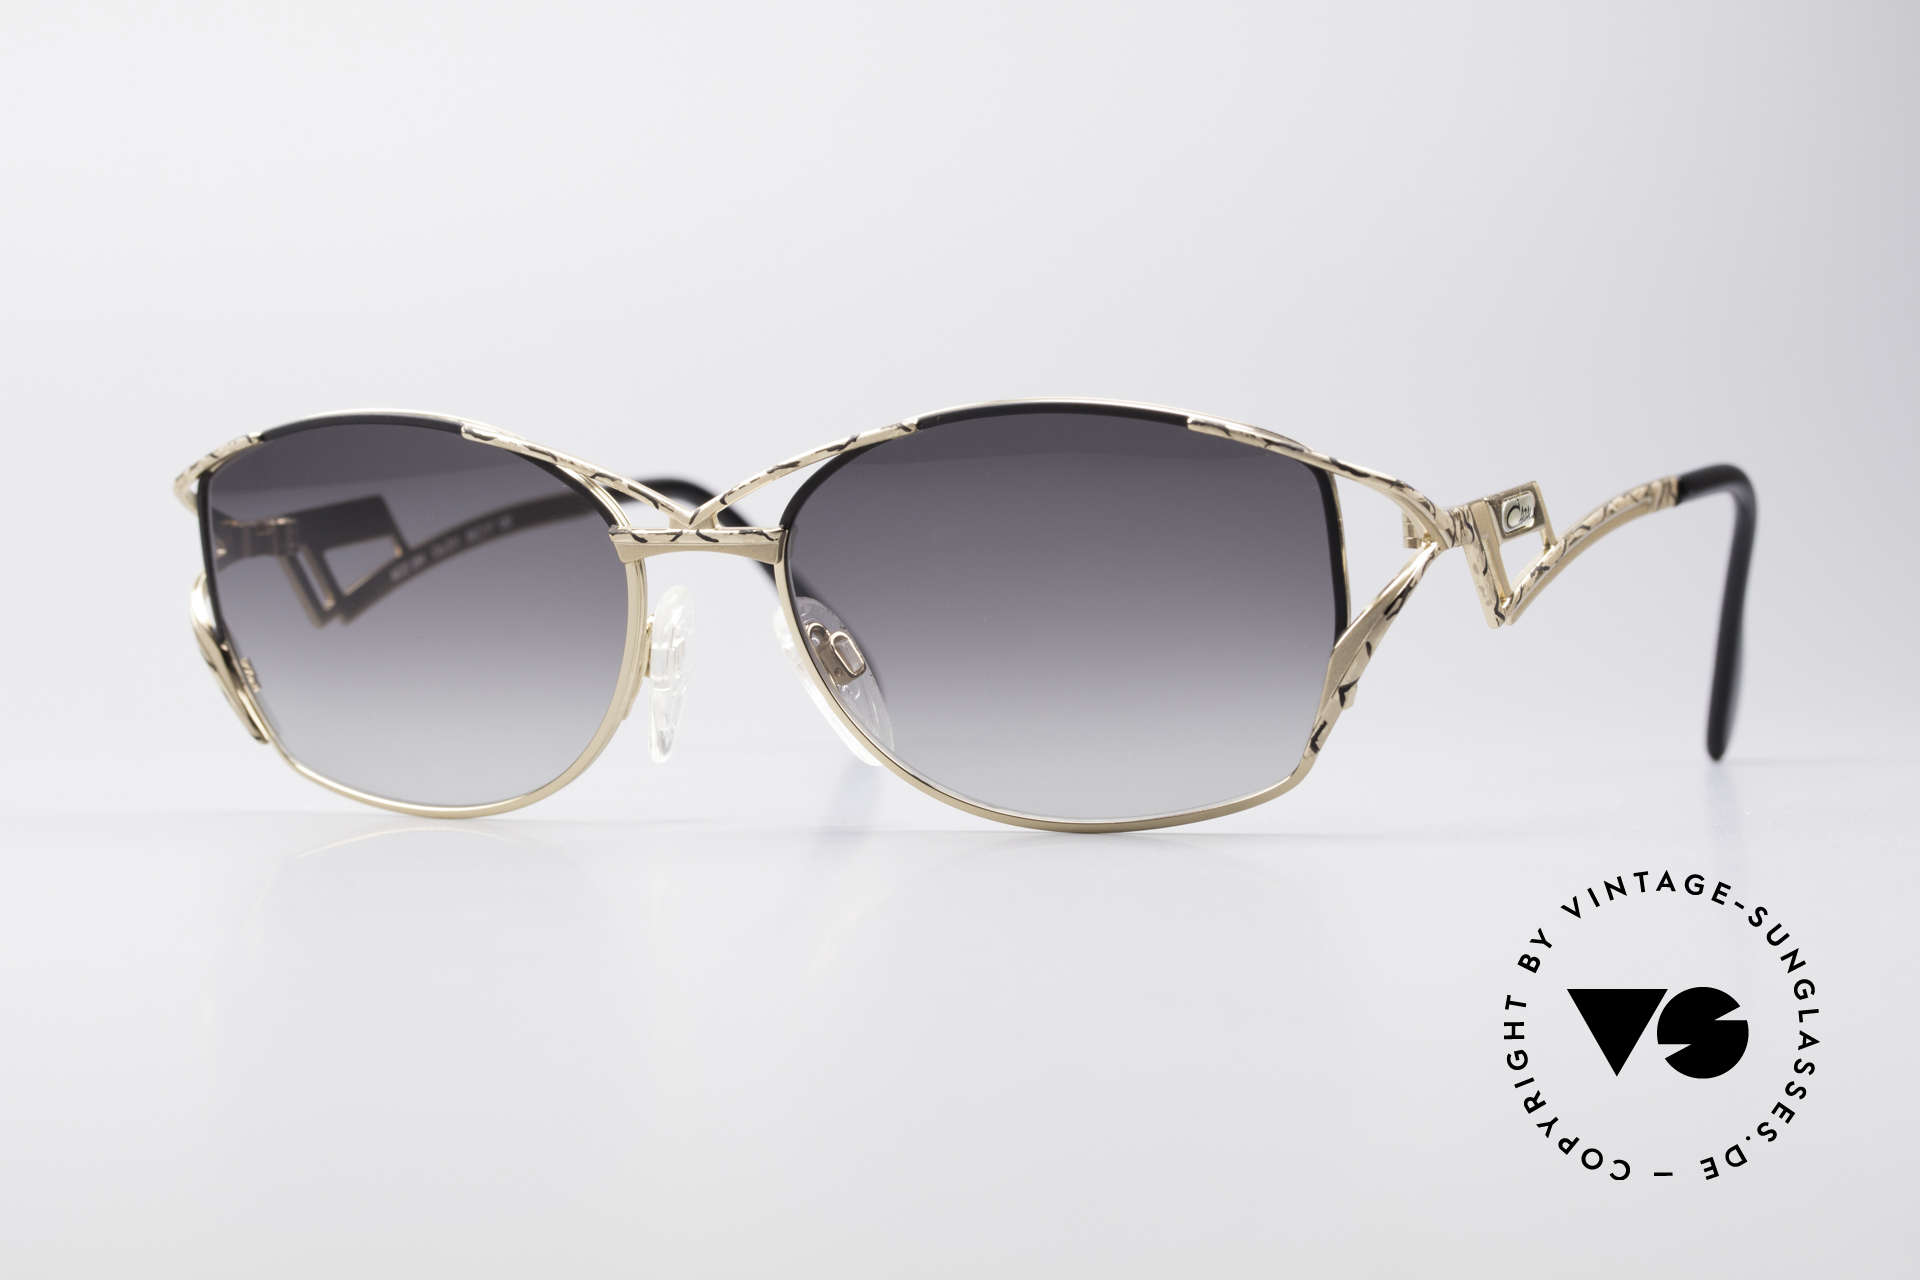 Cazal 284 Luxury Vintage Sunglasses 90's, extraordinary Cazal shades from the late 1990's, Made for Women